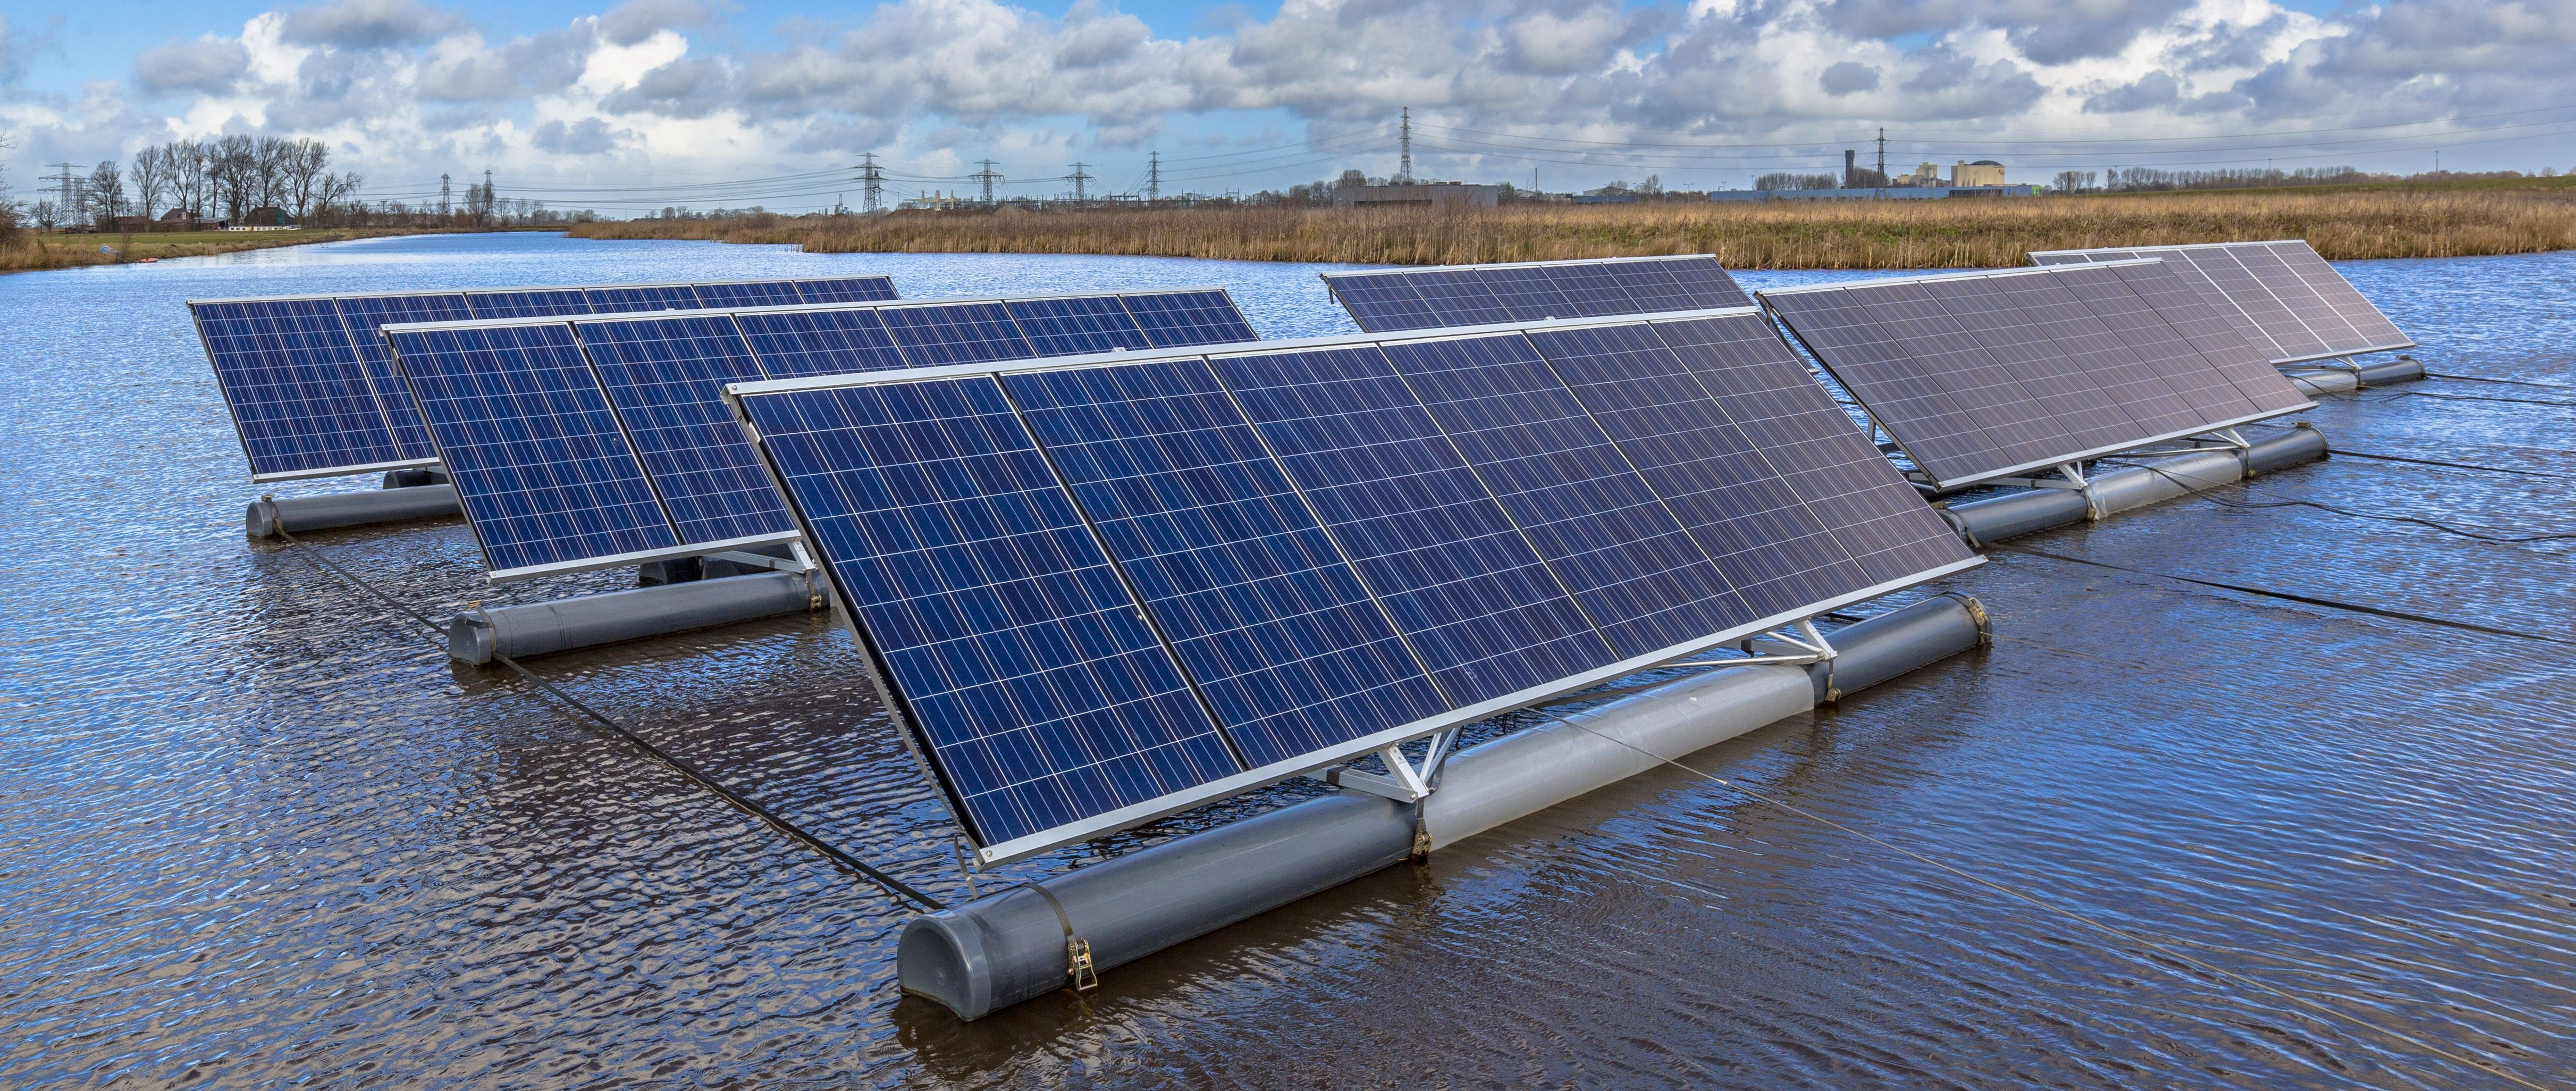 close-up-of-group-of-photovoltaic-panels-floating--PN54BKL.jpg